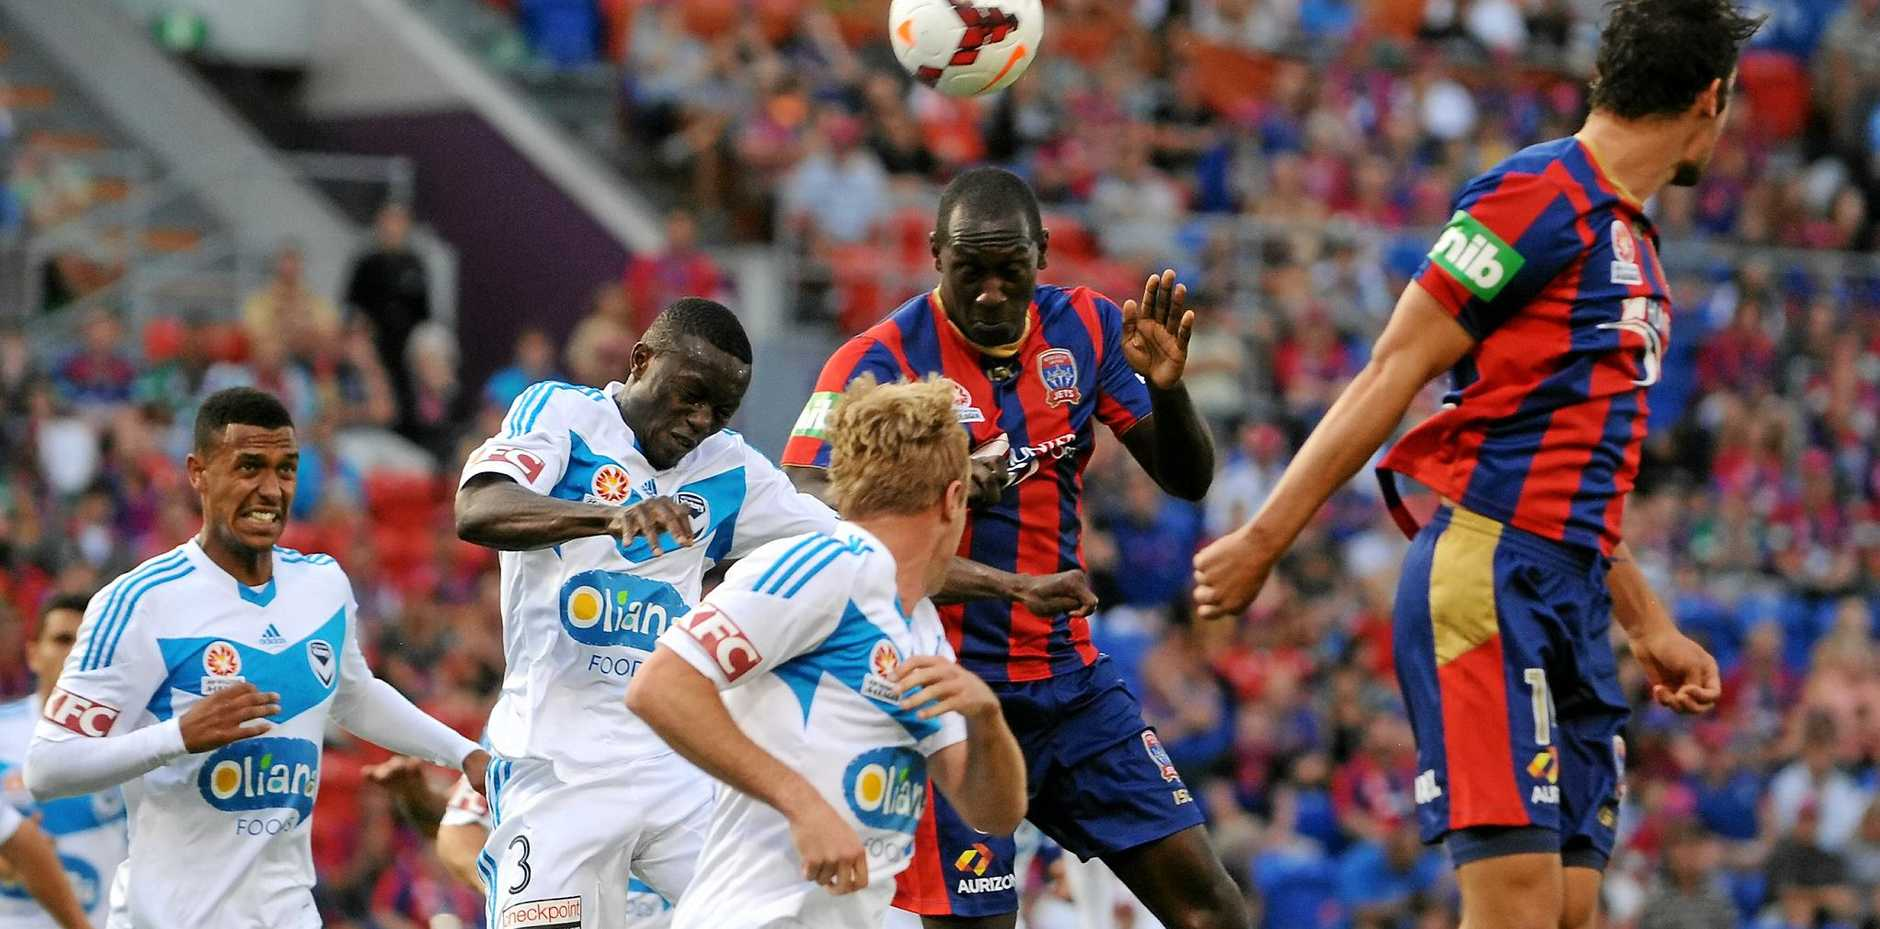 TARGET MAN: Newcastle Jets striker Emile Heskey heads the ball his side's match against Melbourne Victory. The ex-Liverpool man believes boosting the salary cap will help improve the future of the A-League.